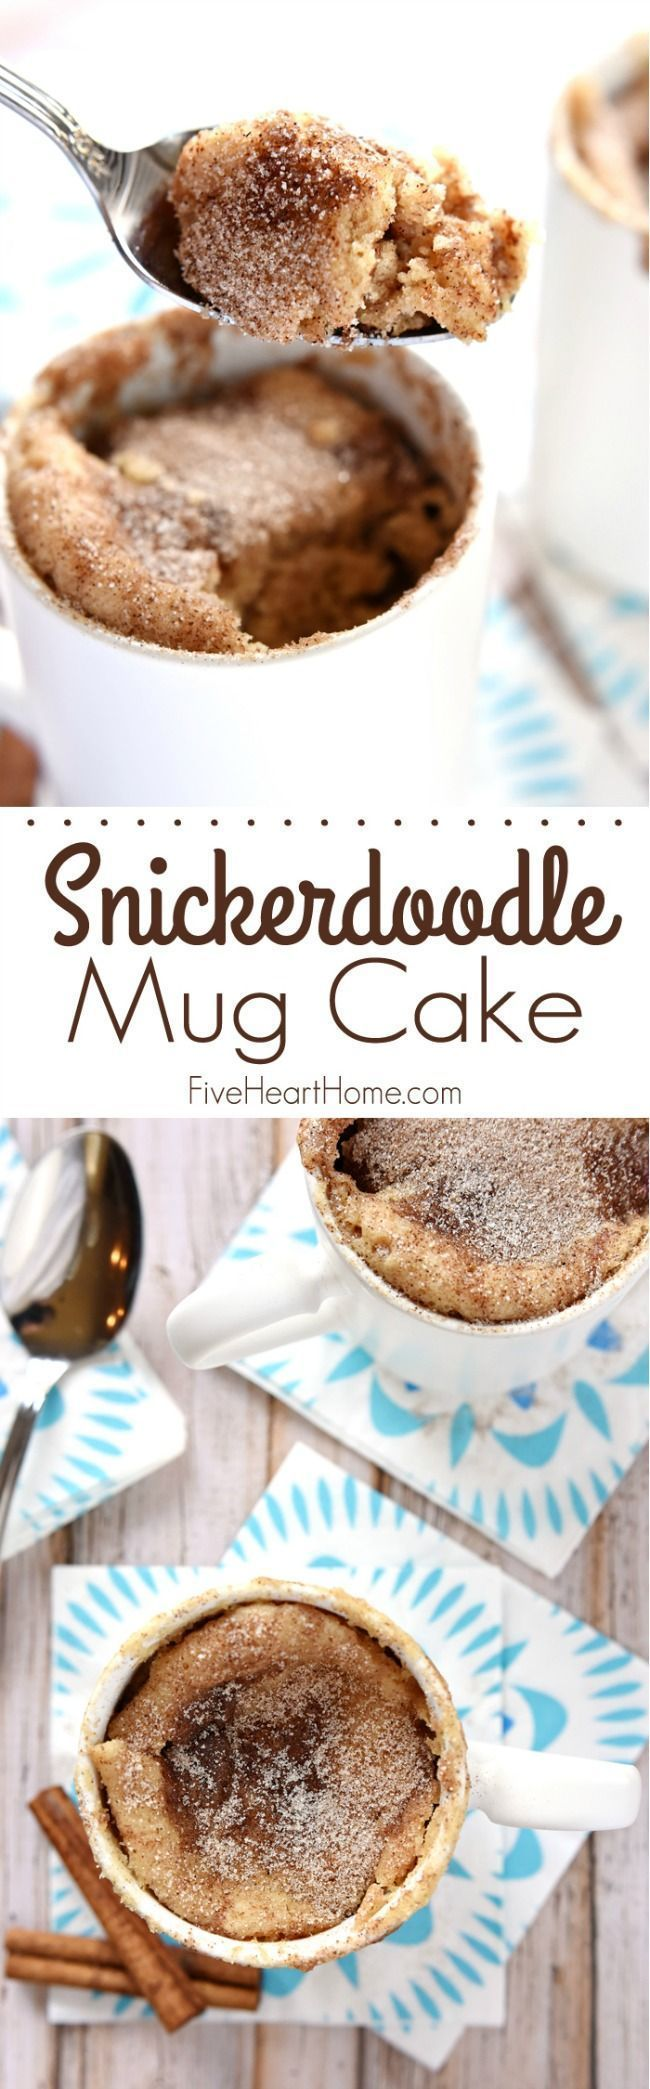 Mug cake recipes you can make in minutes!